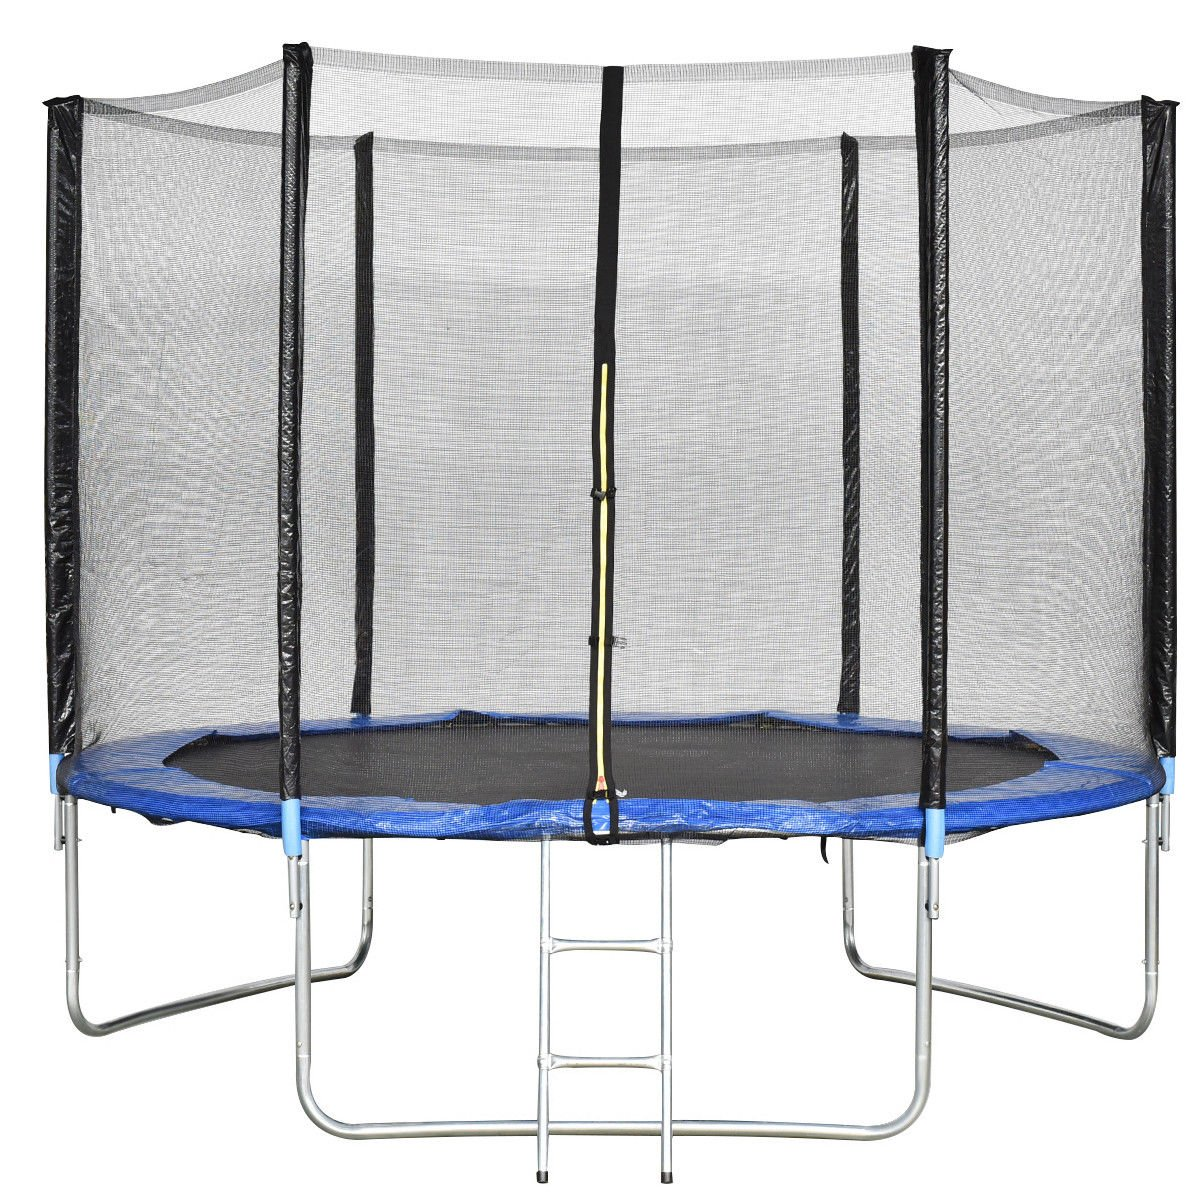 Giantex Trampoline Combo Bounce Jump Safety Enclosure Net W/Spring Pad Ladder (10 FT)